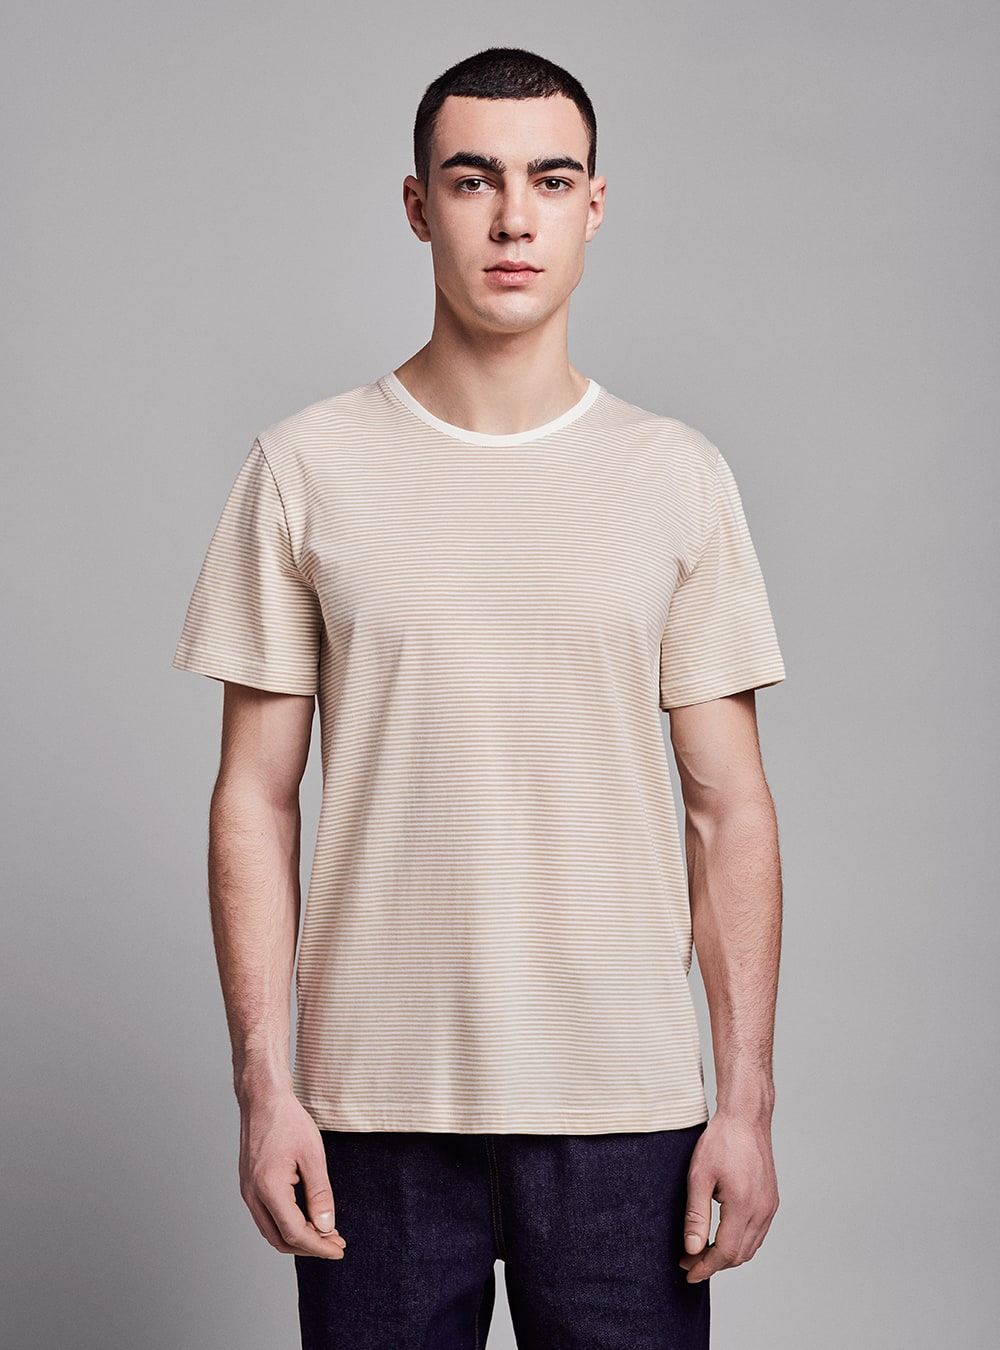 Stripes t-shirt (beige) in organic cotton, made in Portugal by wetheknot.